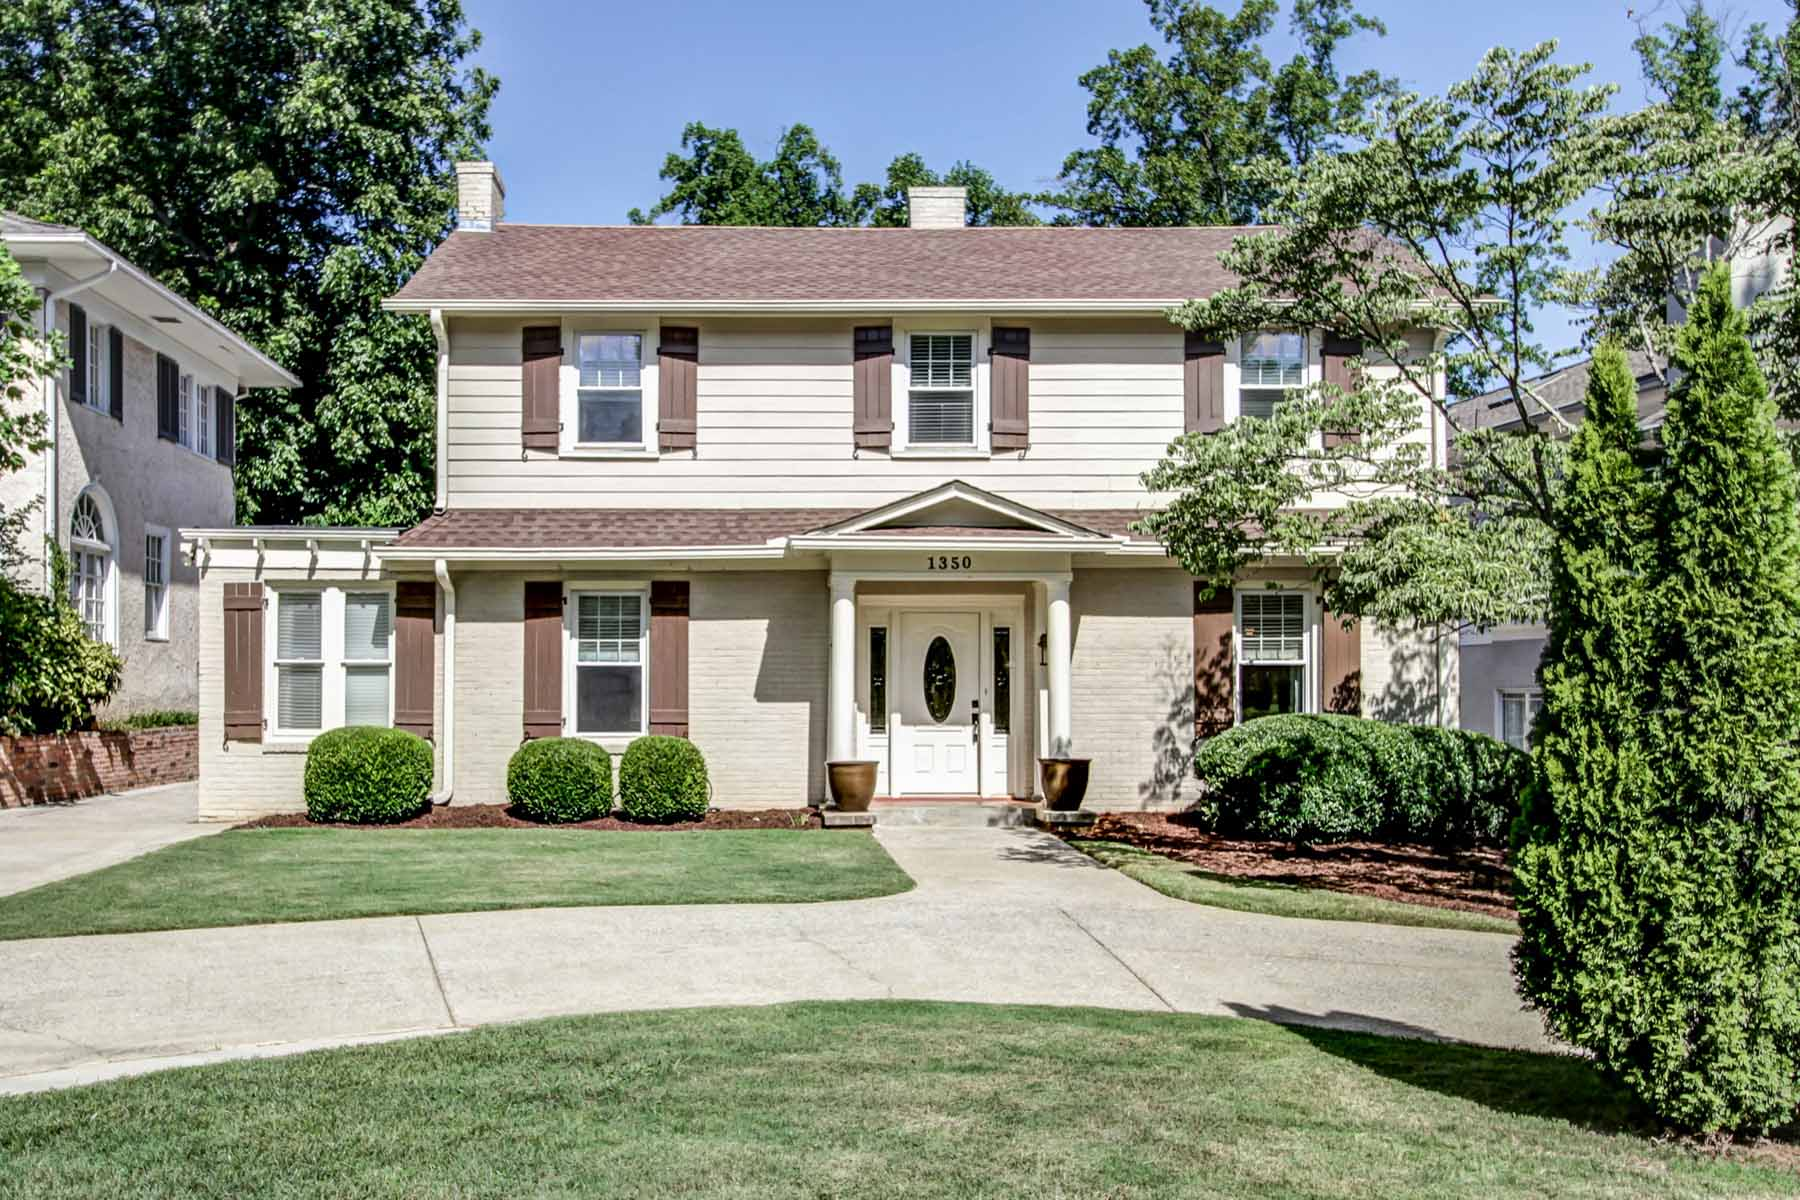 Single Family Home for Sale at Inviting 1925 Druid Hills Traditional 1350 Briarcliff Road Druid Hills, Atlanta, Georgia, 30306 United States